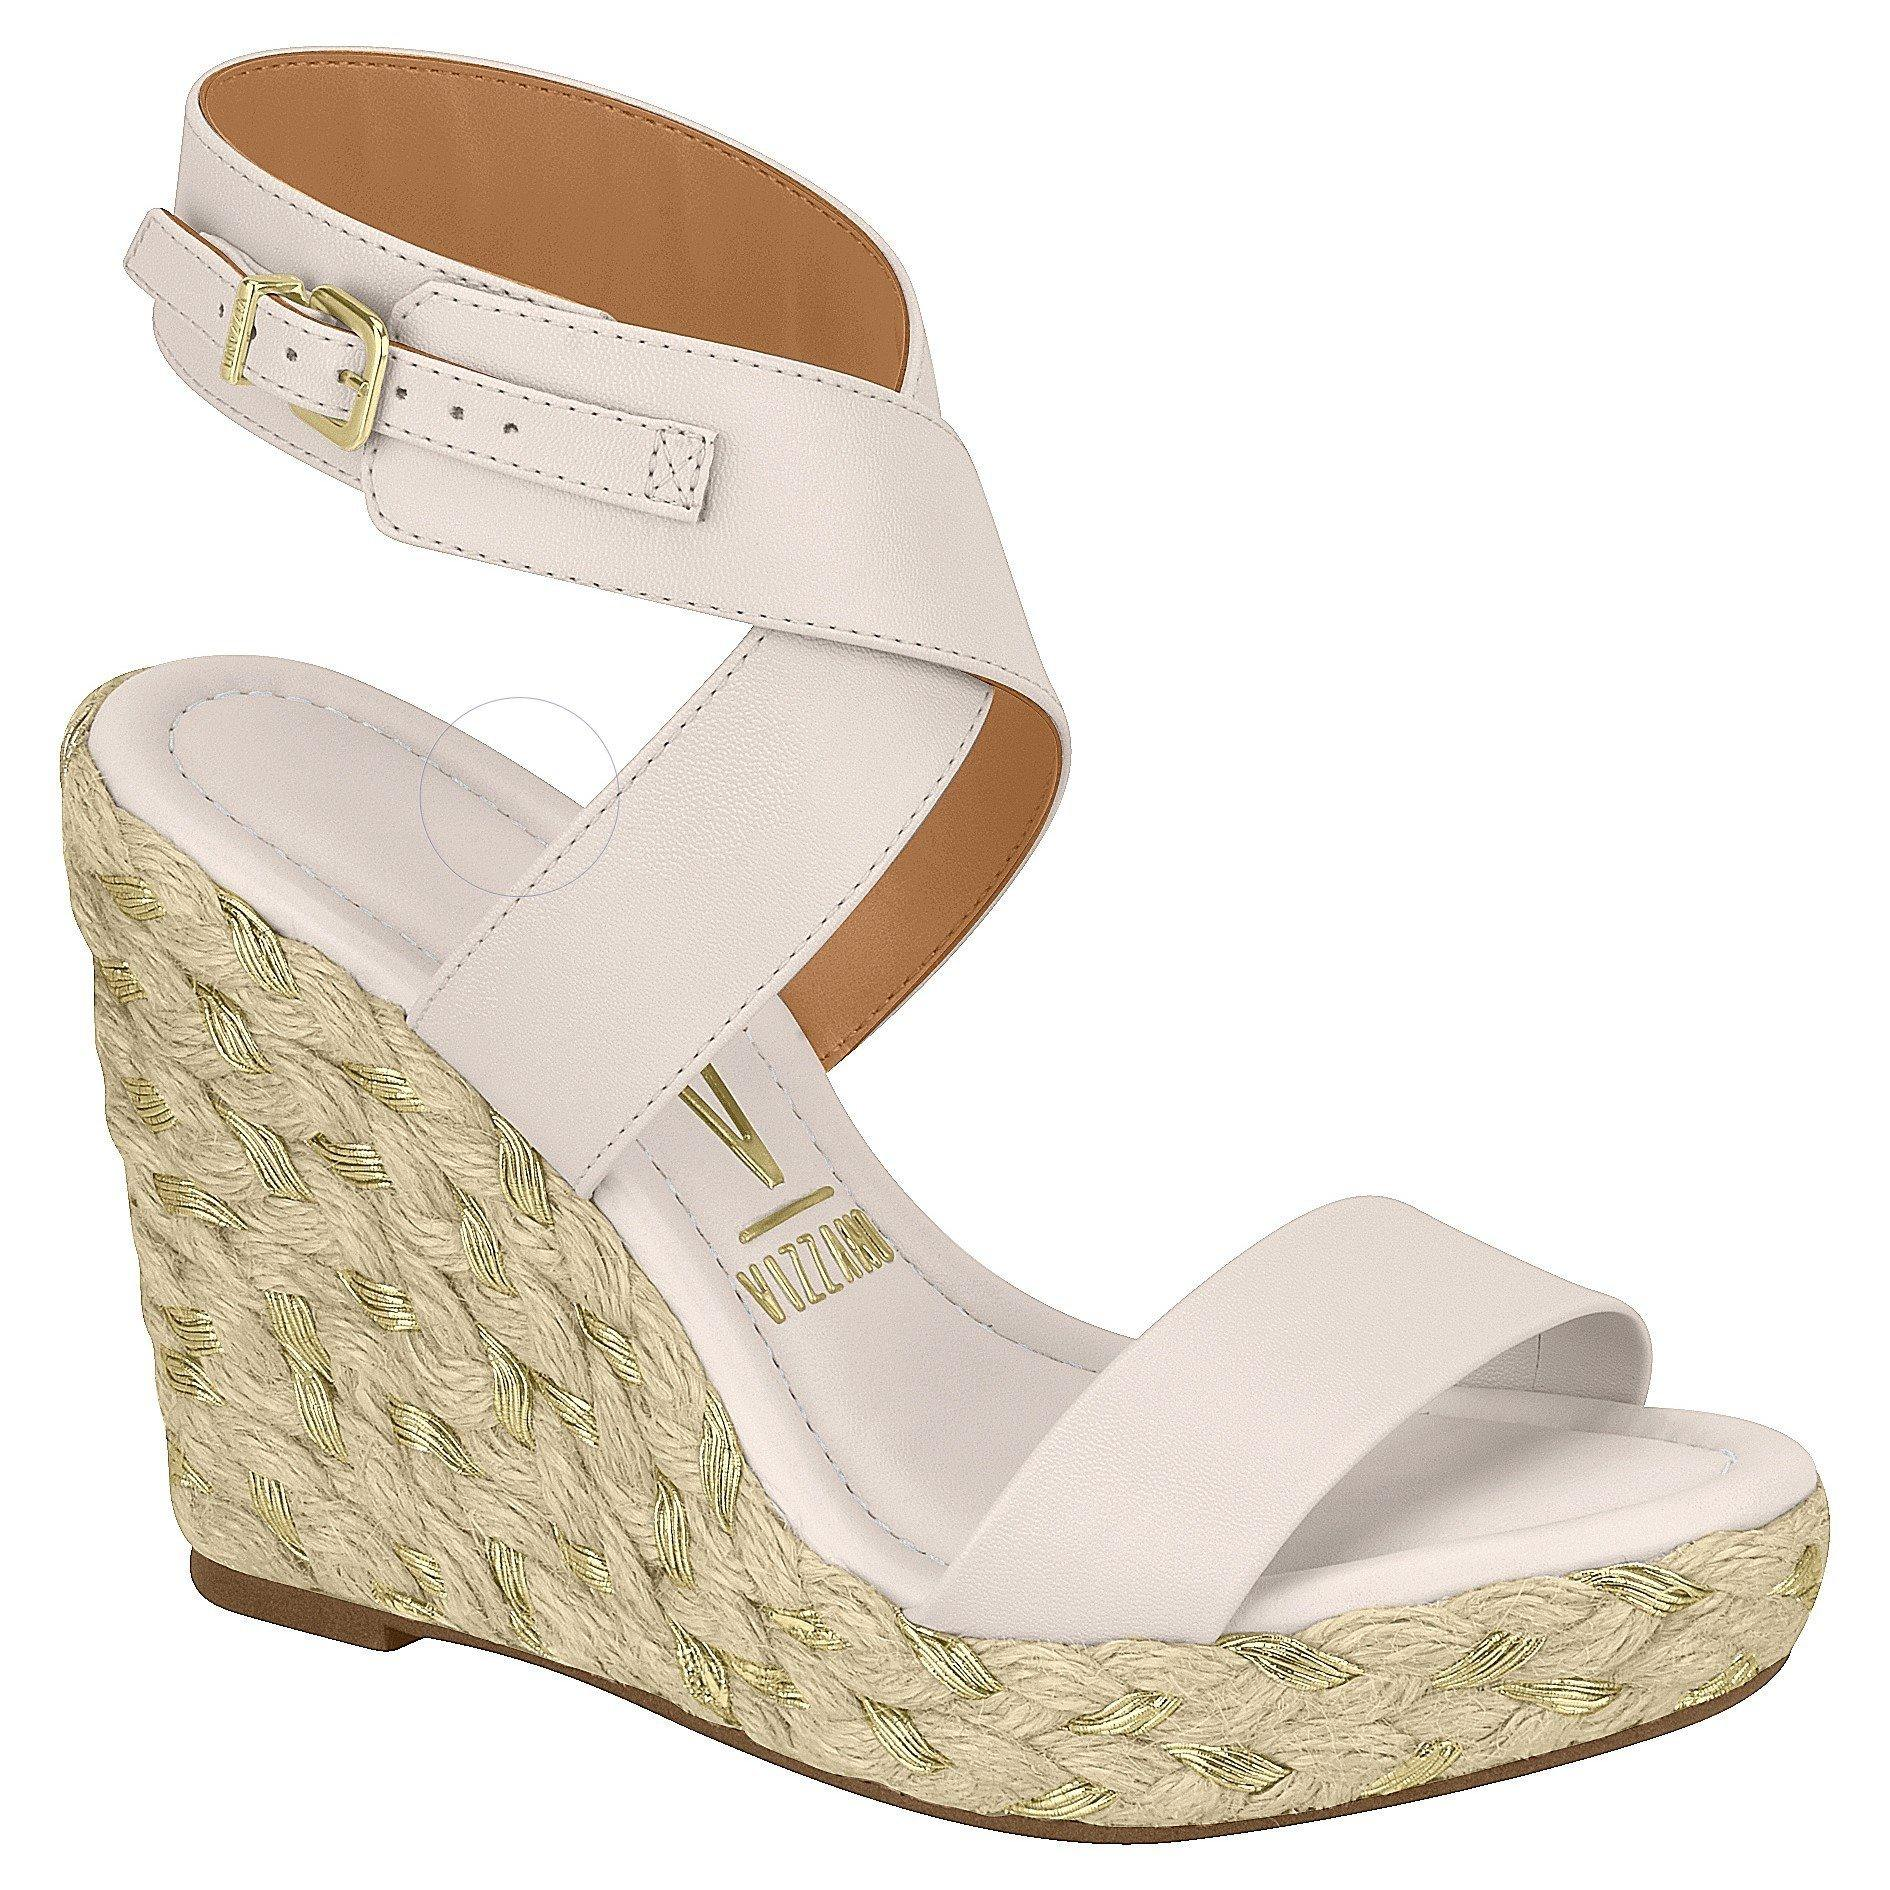 Vizzano 6283-4248 Wedge Sandal in Cream Napa